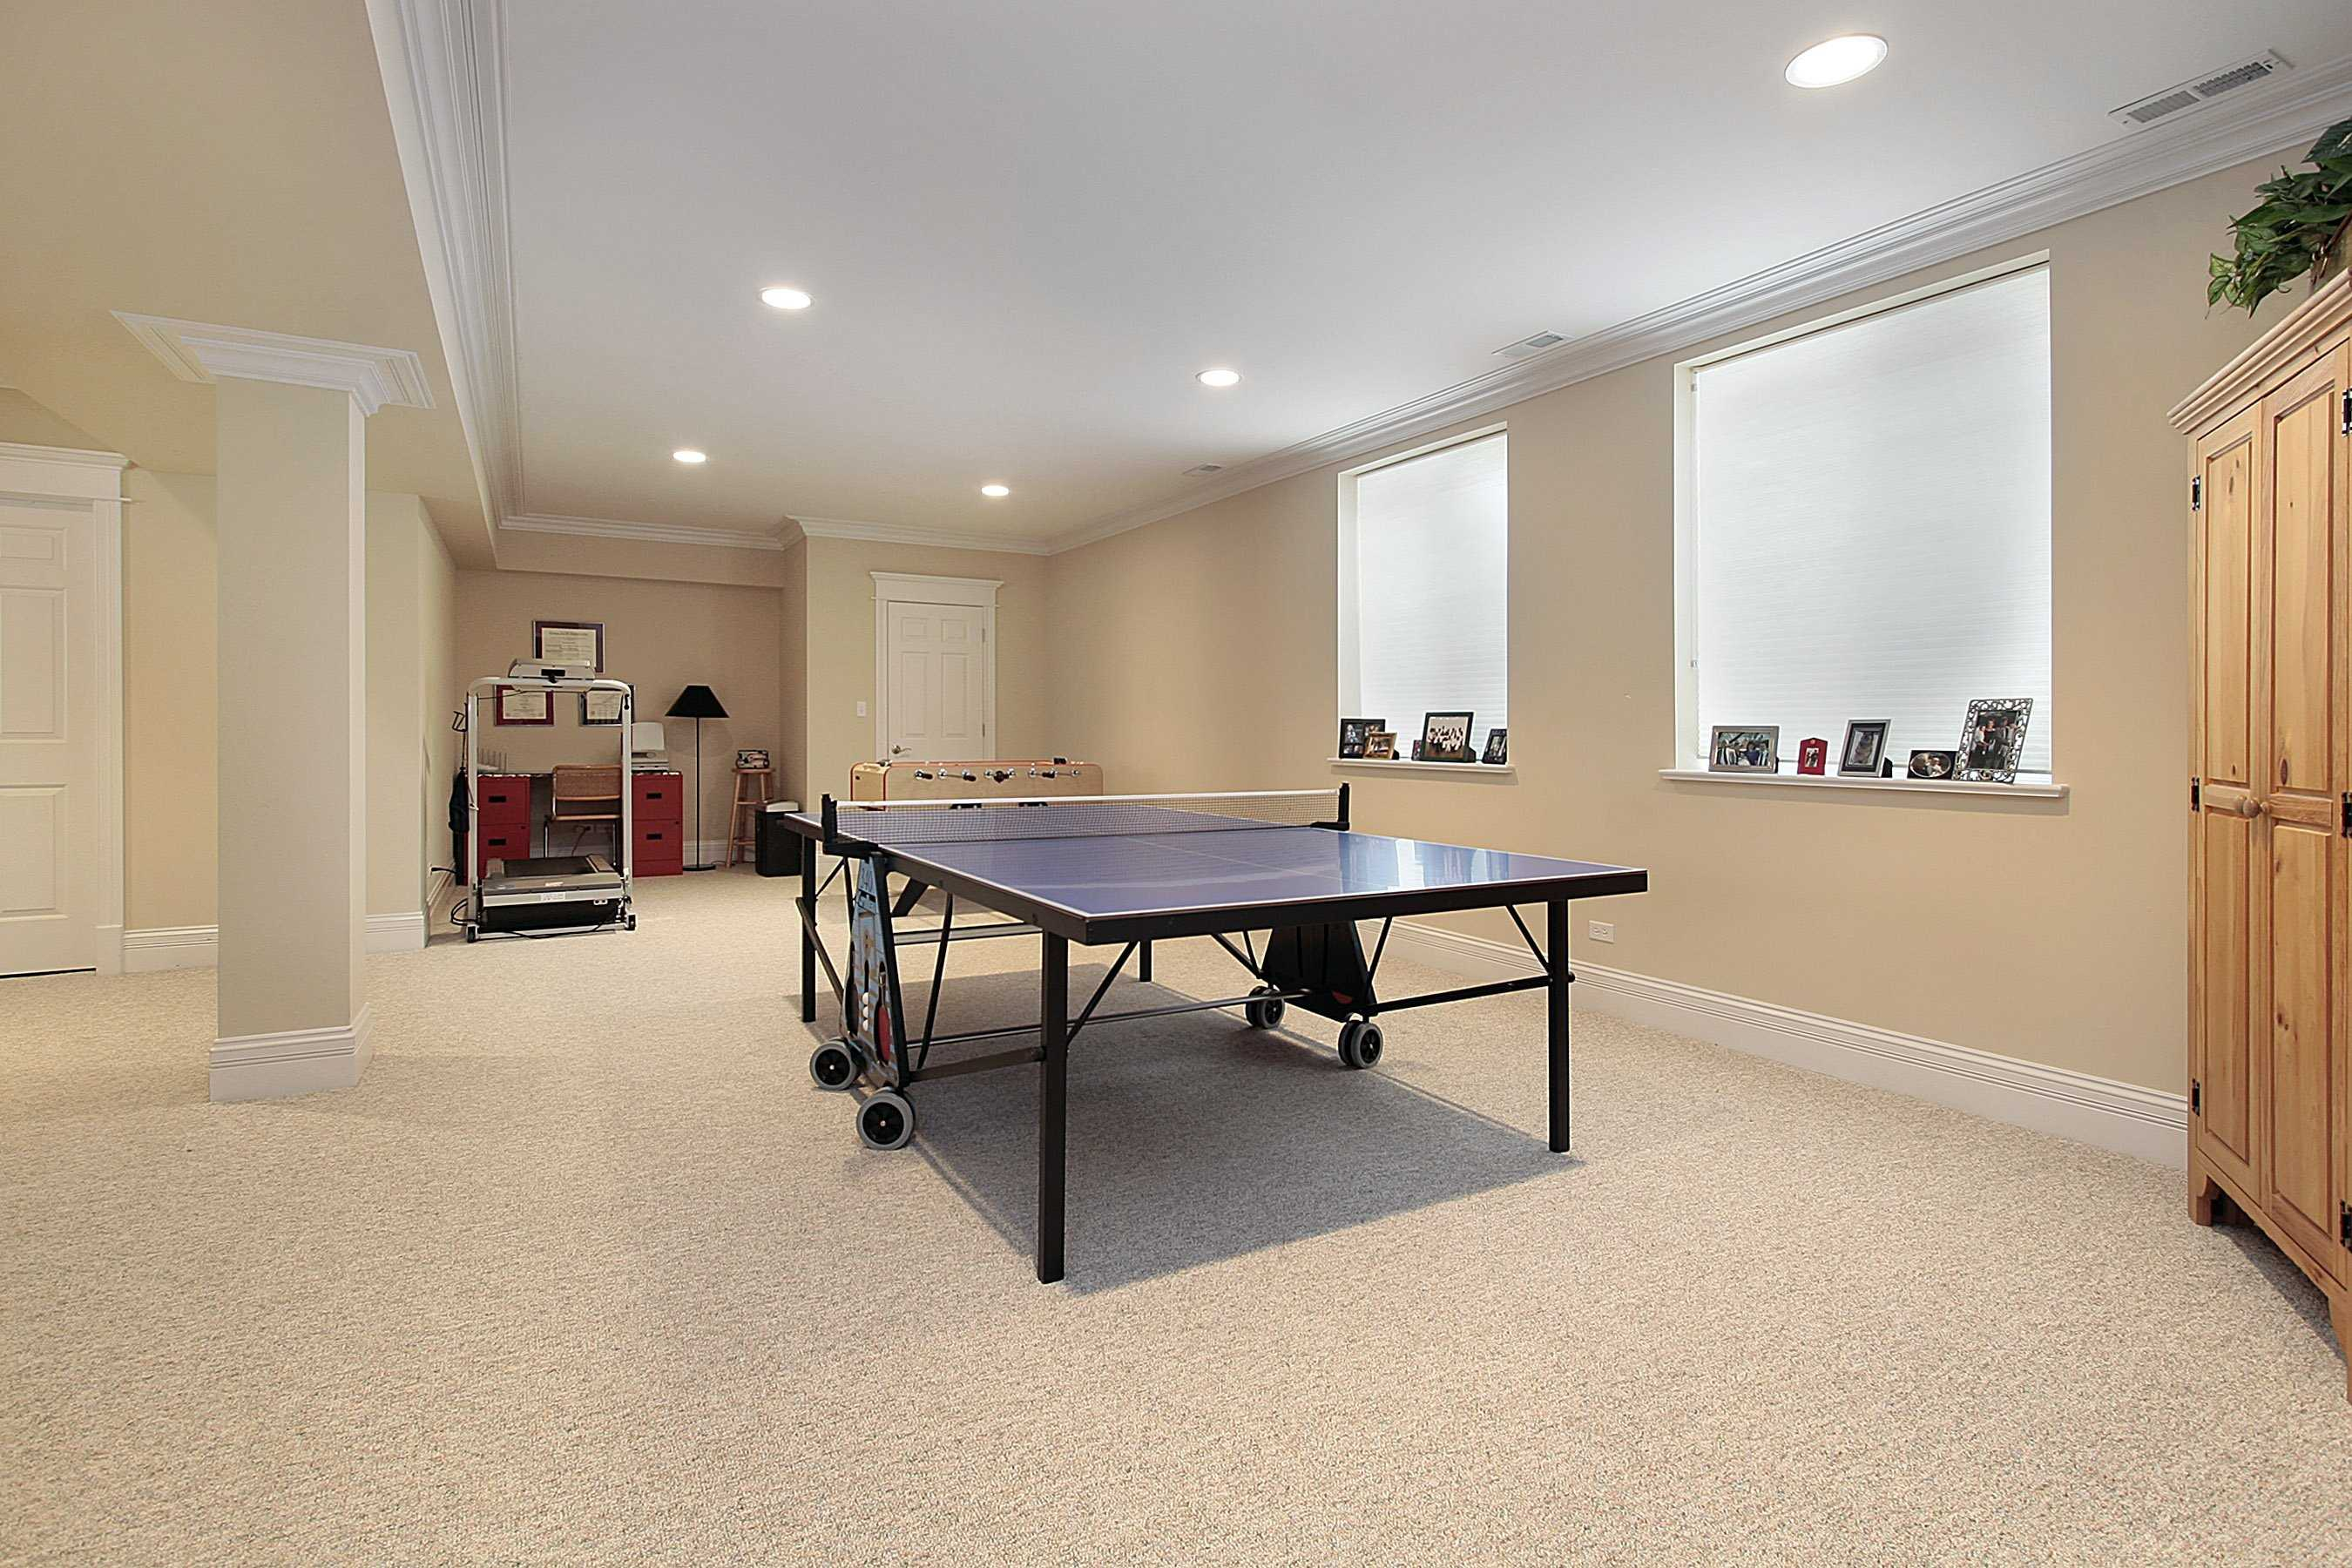 30 basement remodeling ideas inspiration basement rec room decorating